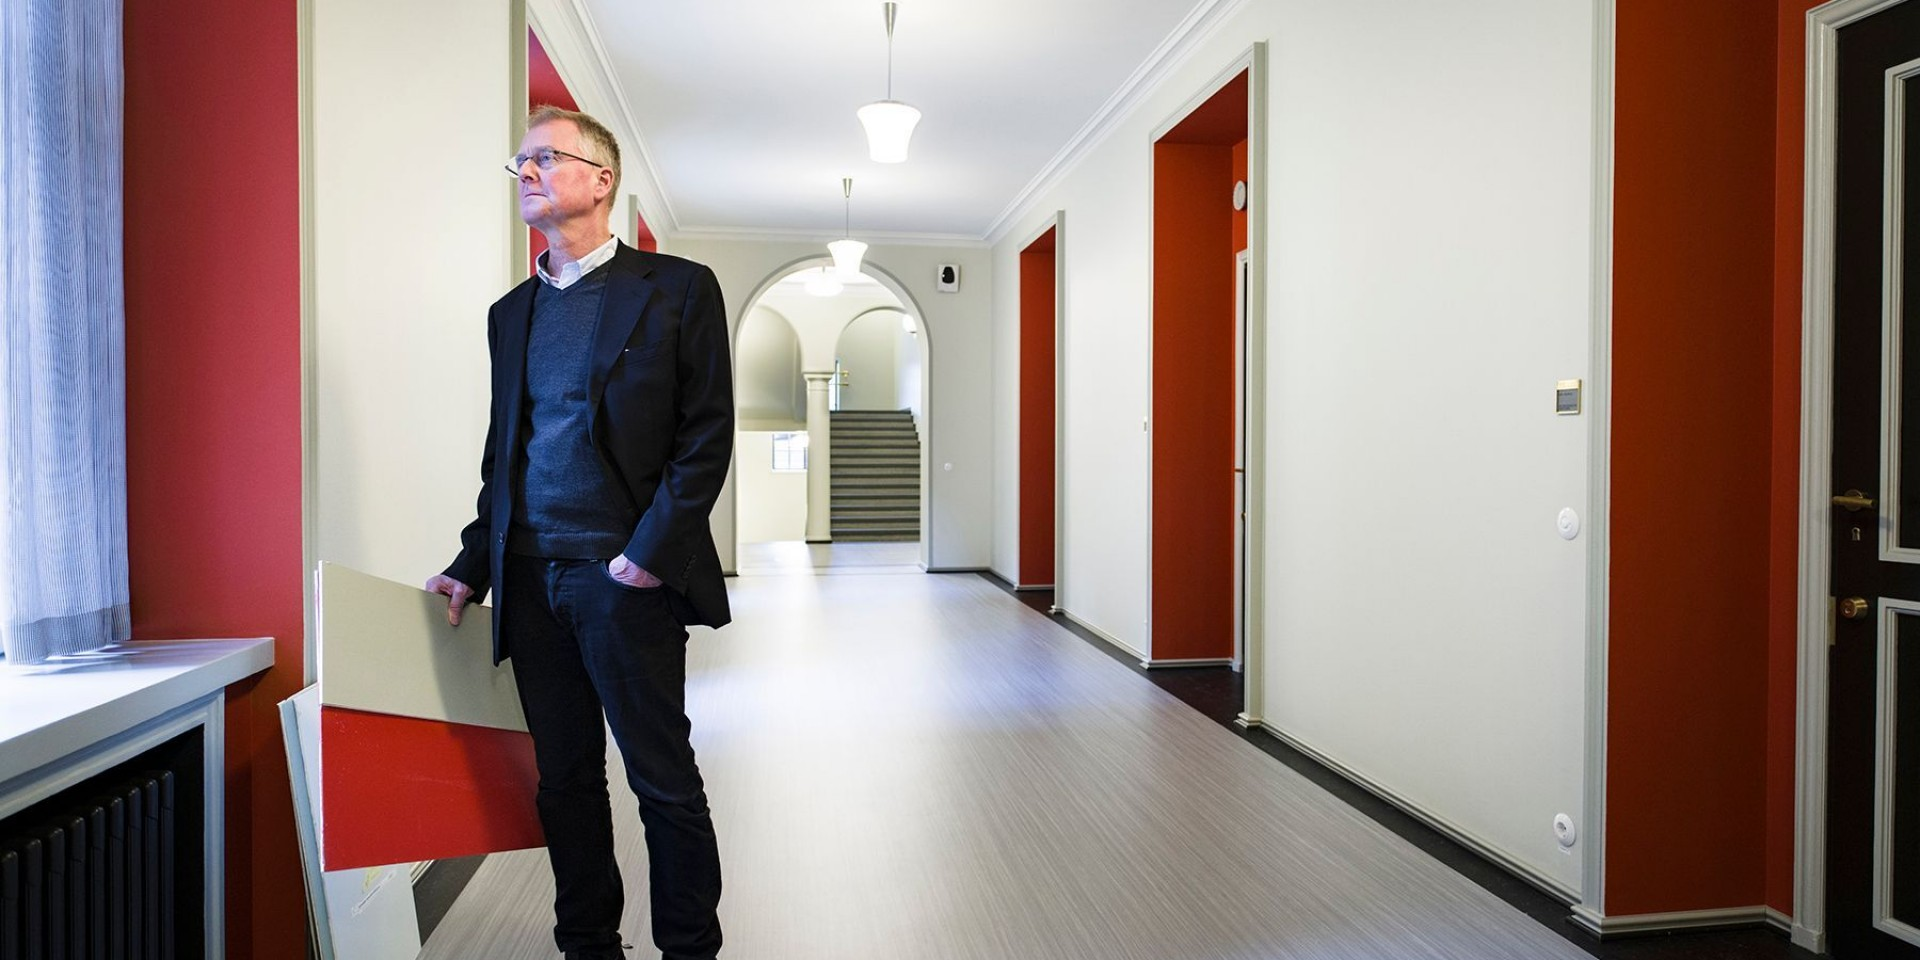 Architect Peter Verhe, the main designer of the refurbishment of the Parliament House, in the repainted corridor of the third floor of the main building.